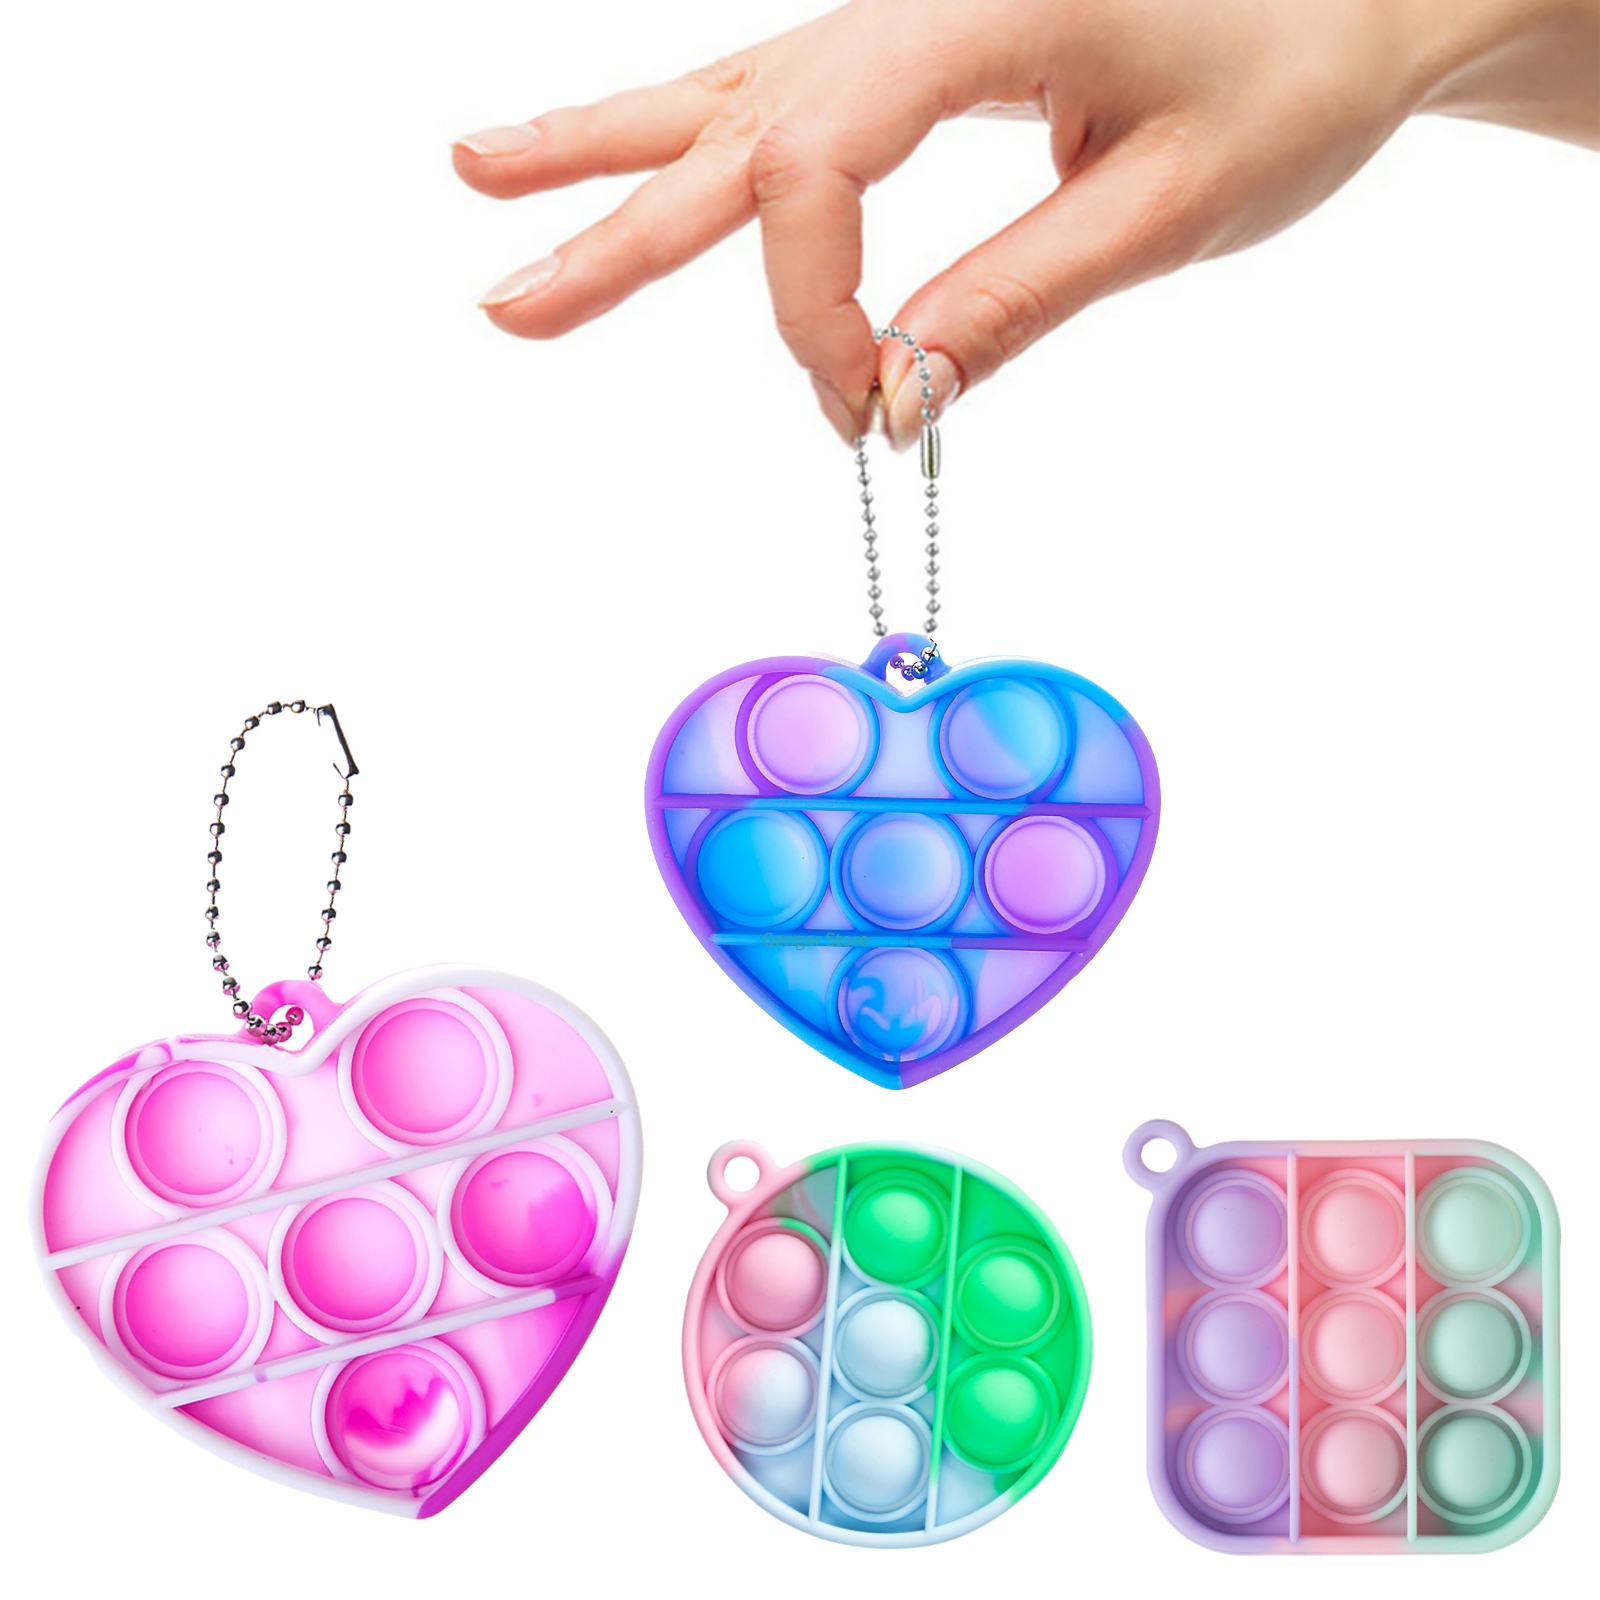 Fidget Sensory Toy Mini Popit Pops Push Bubble Figet Simple Dimple Toy Keychain Ring Anti stress Board Autism Educational Toy